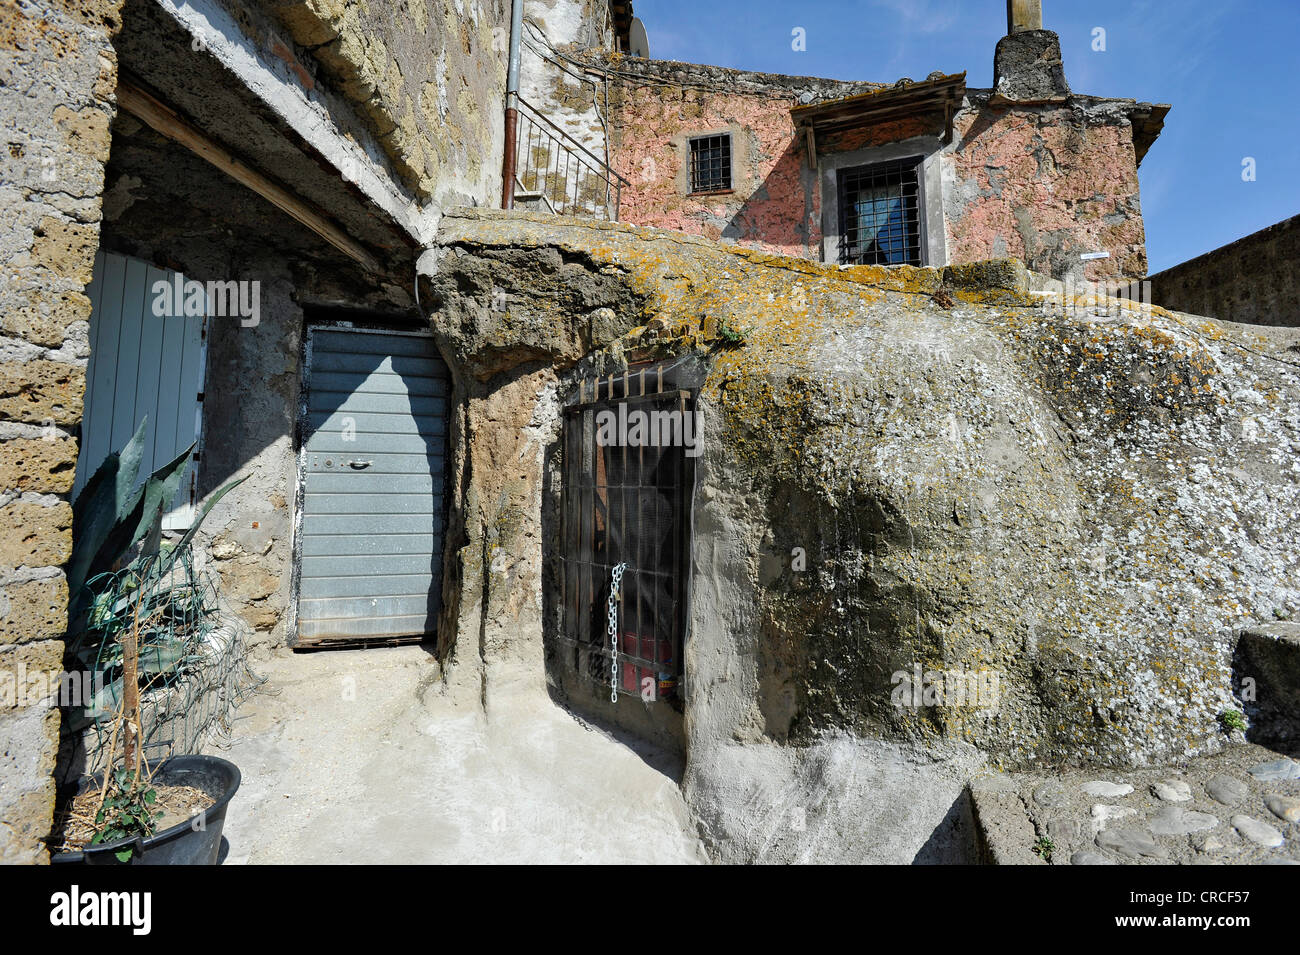 Winding alley with stairways and passages, medieval town of Vecchia Calcata, valley of Valle del Treja, Lazio, Italy, - Stock Image